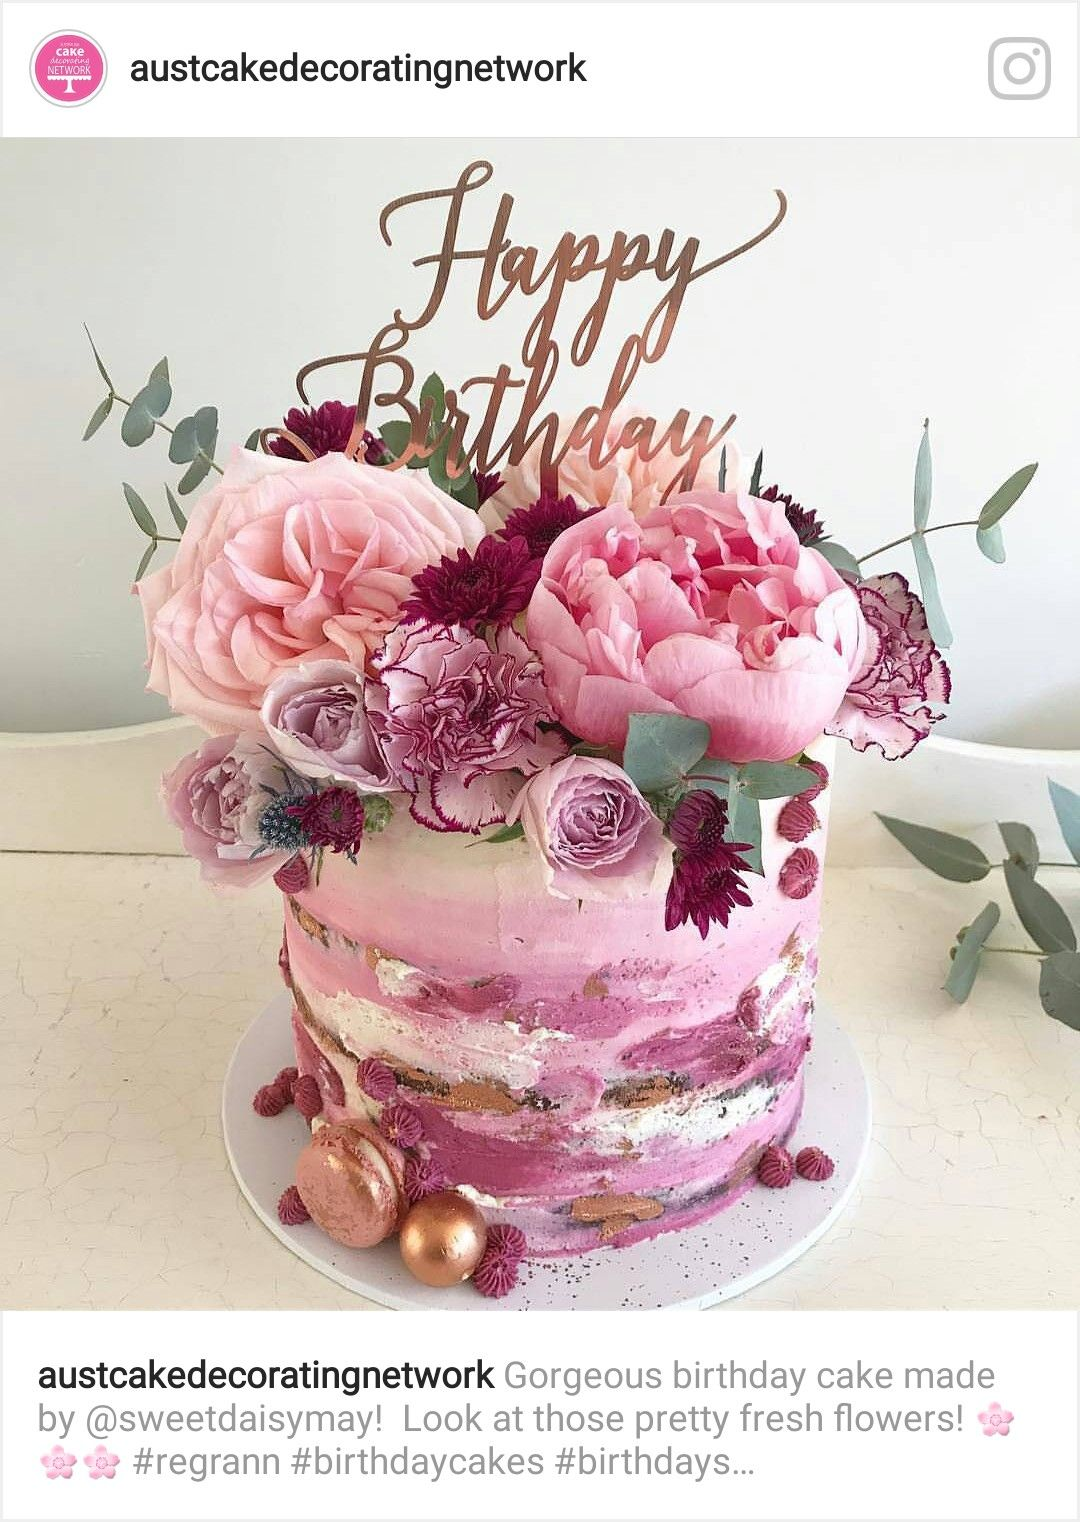 Miraculous 35Th Birthday With Images Birthday Cake With Flowers Funny Birthday Cards Online Aeocydamsfinfo